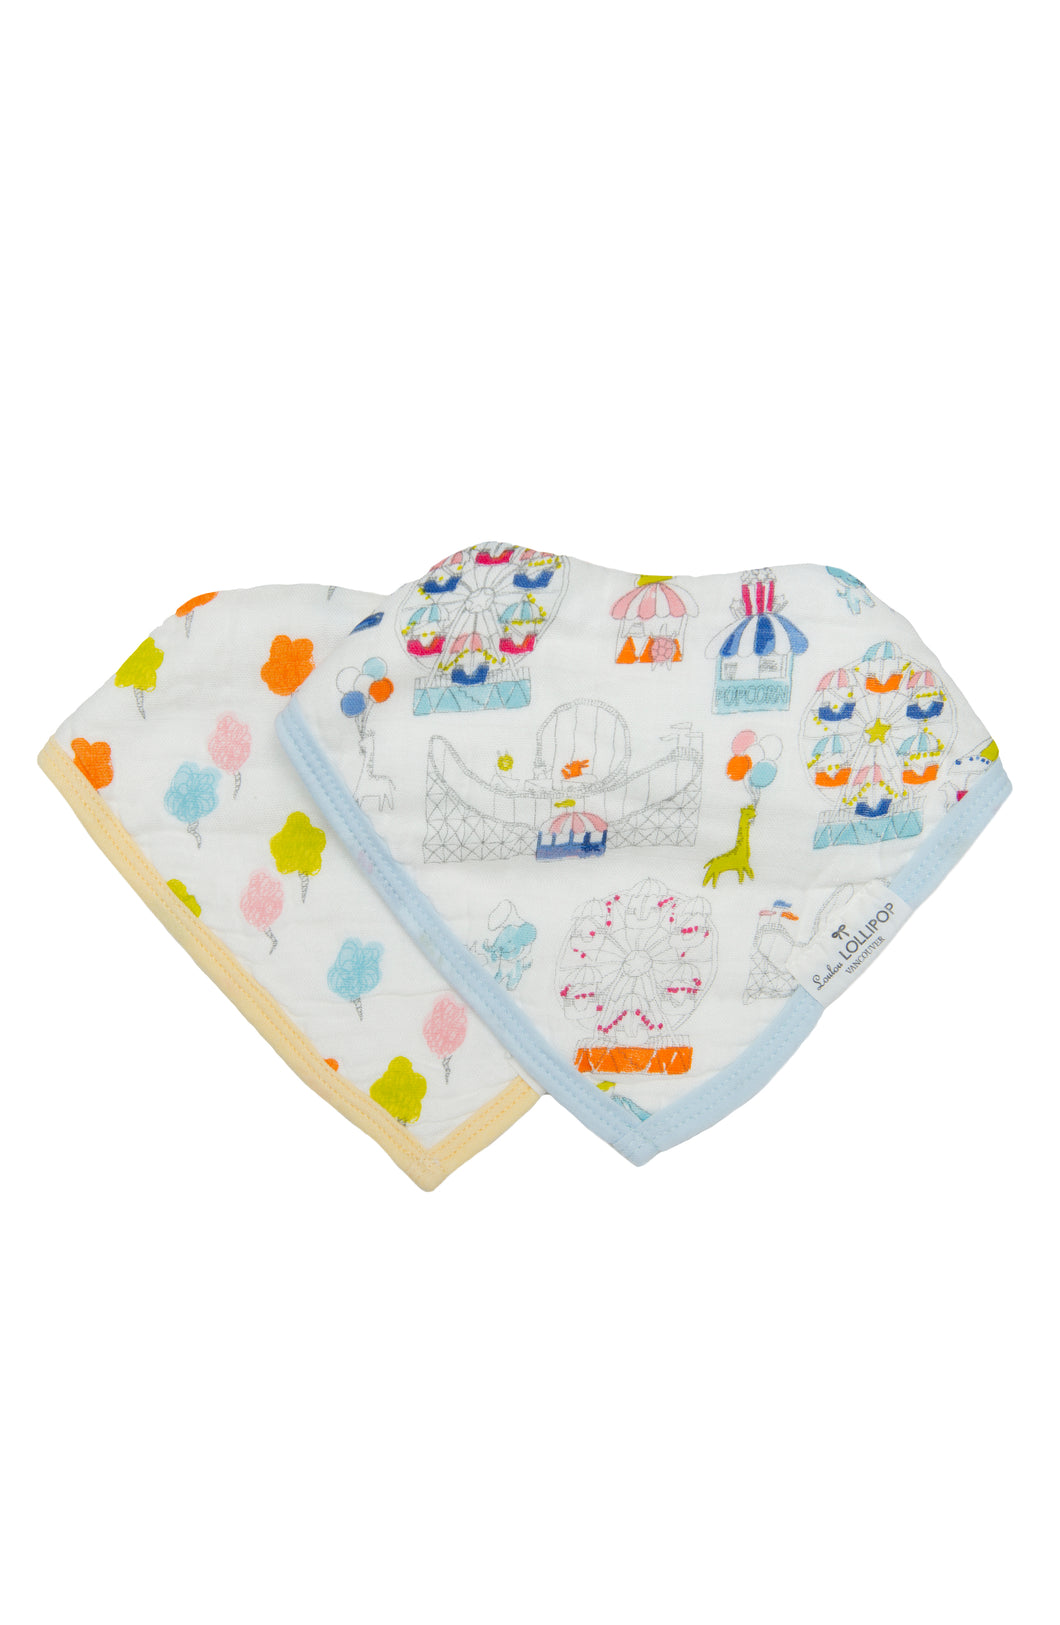 Loulou Lollipop Bandana Bib Set - Carnival Fun